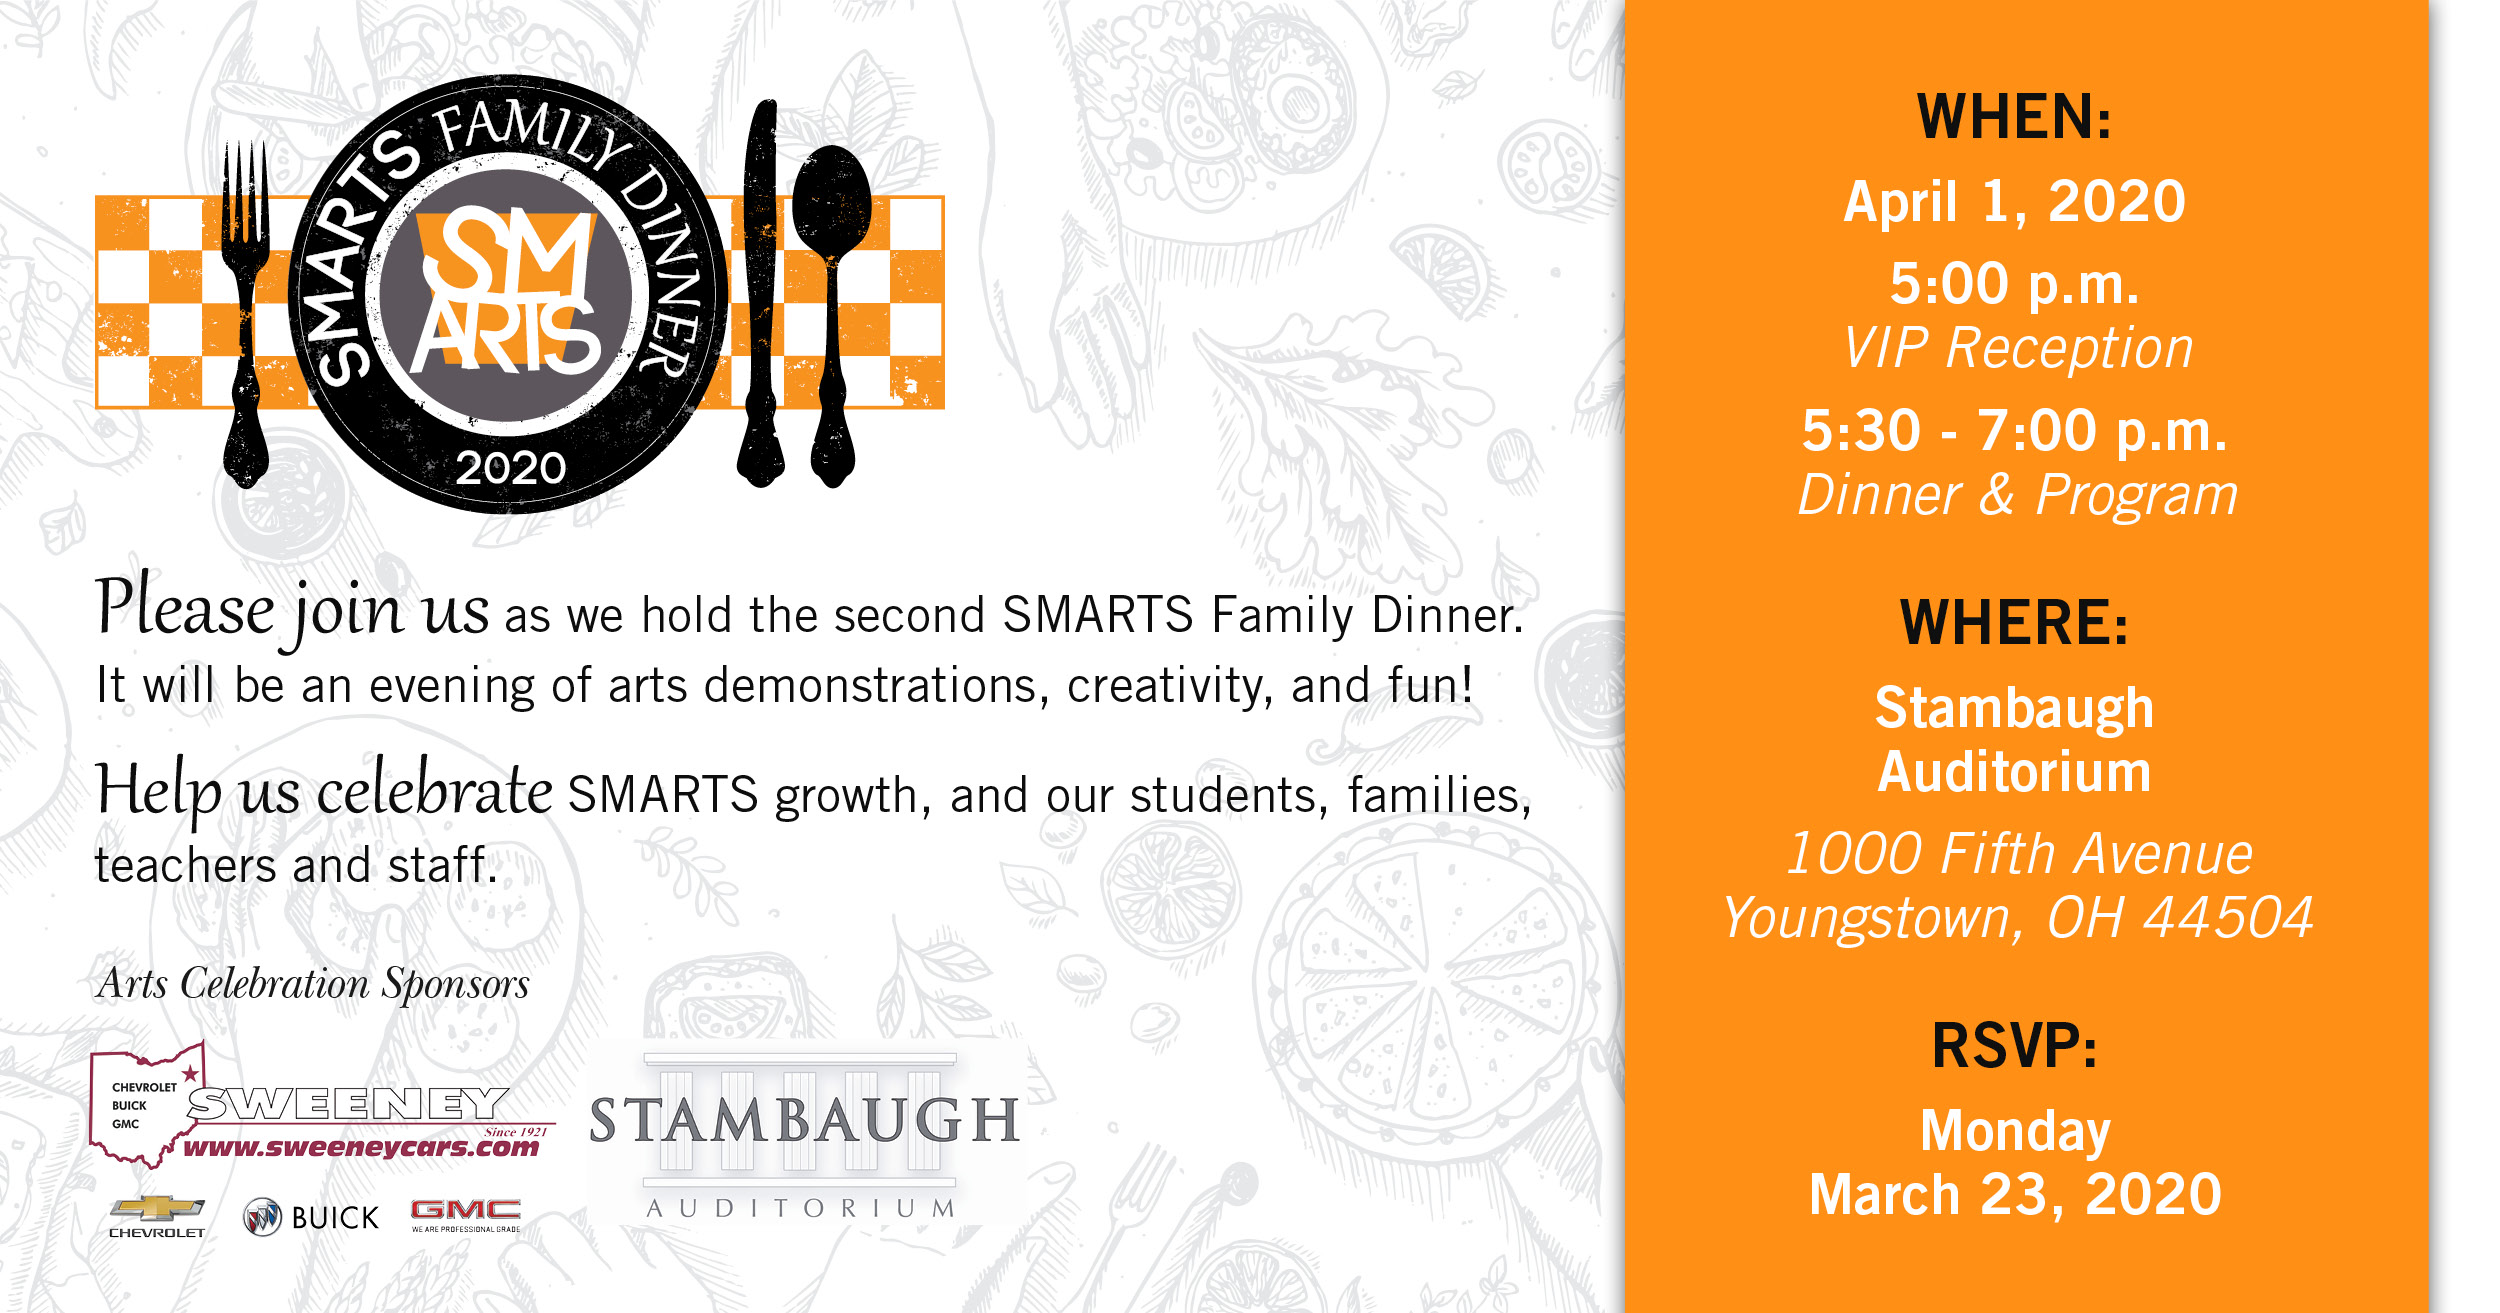 SMARTS family dinner invite FB post_1200x630_02-20